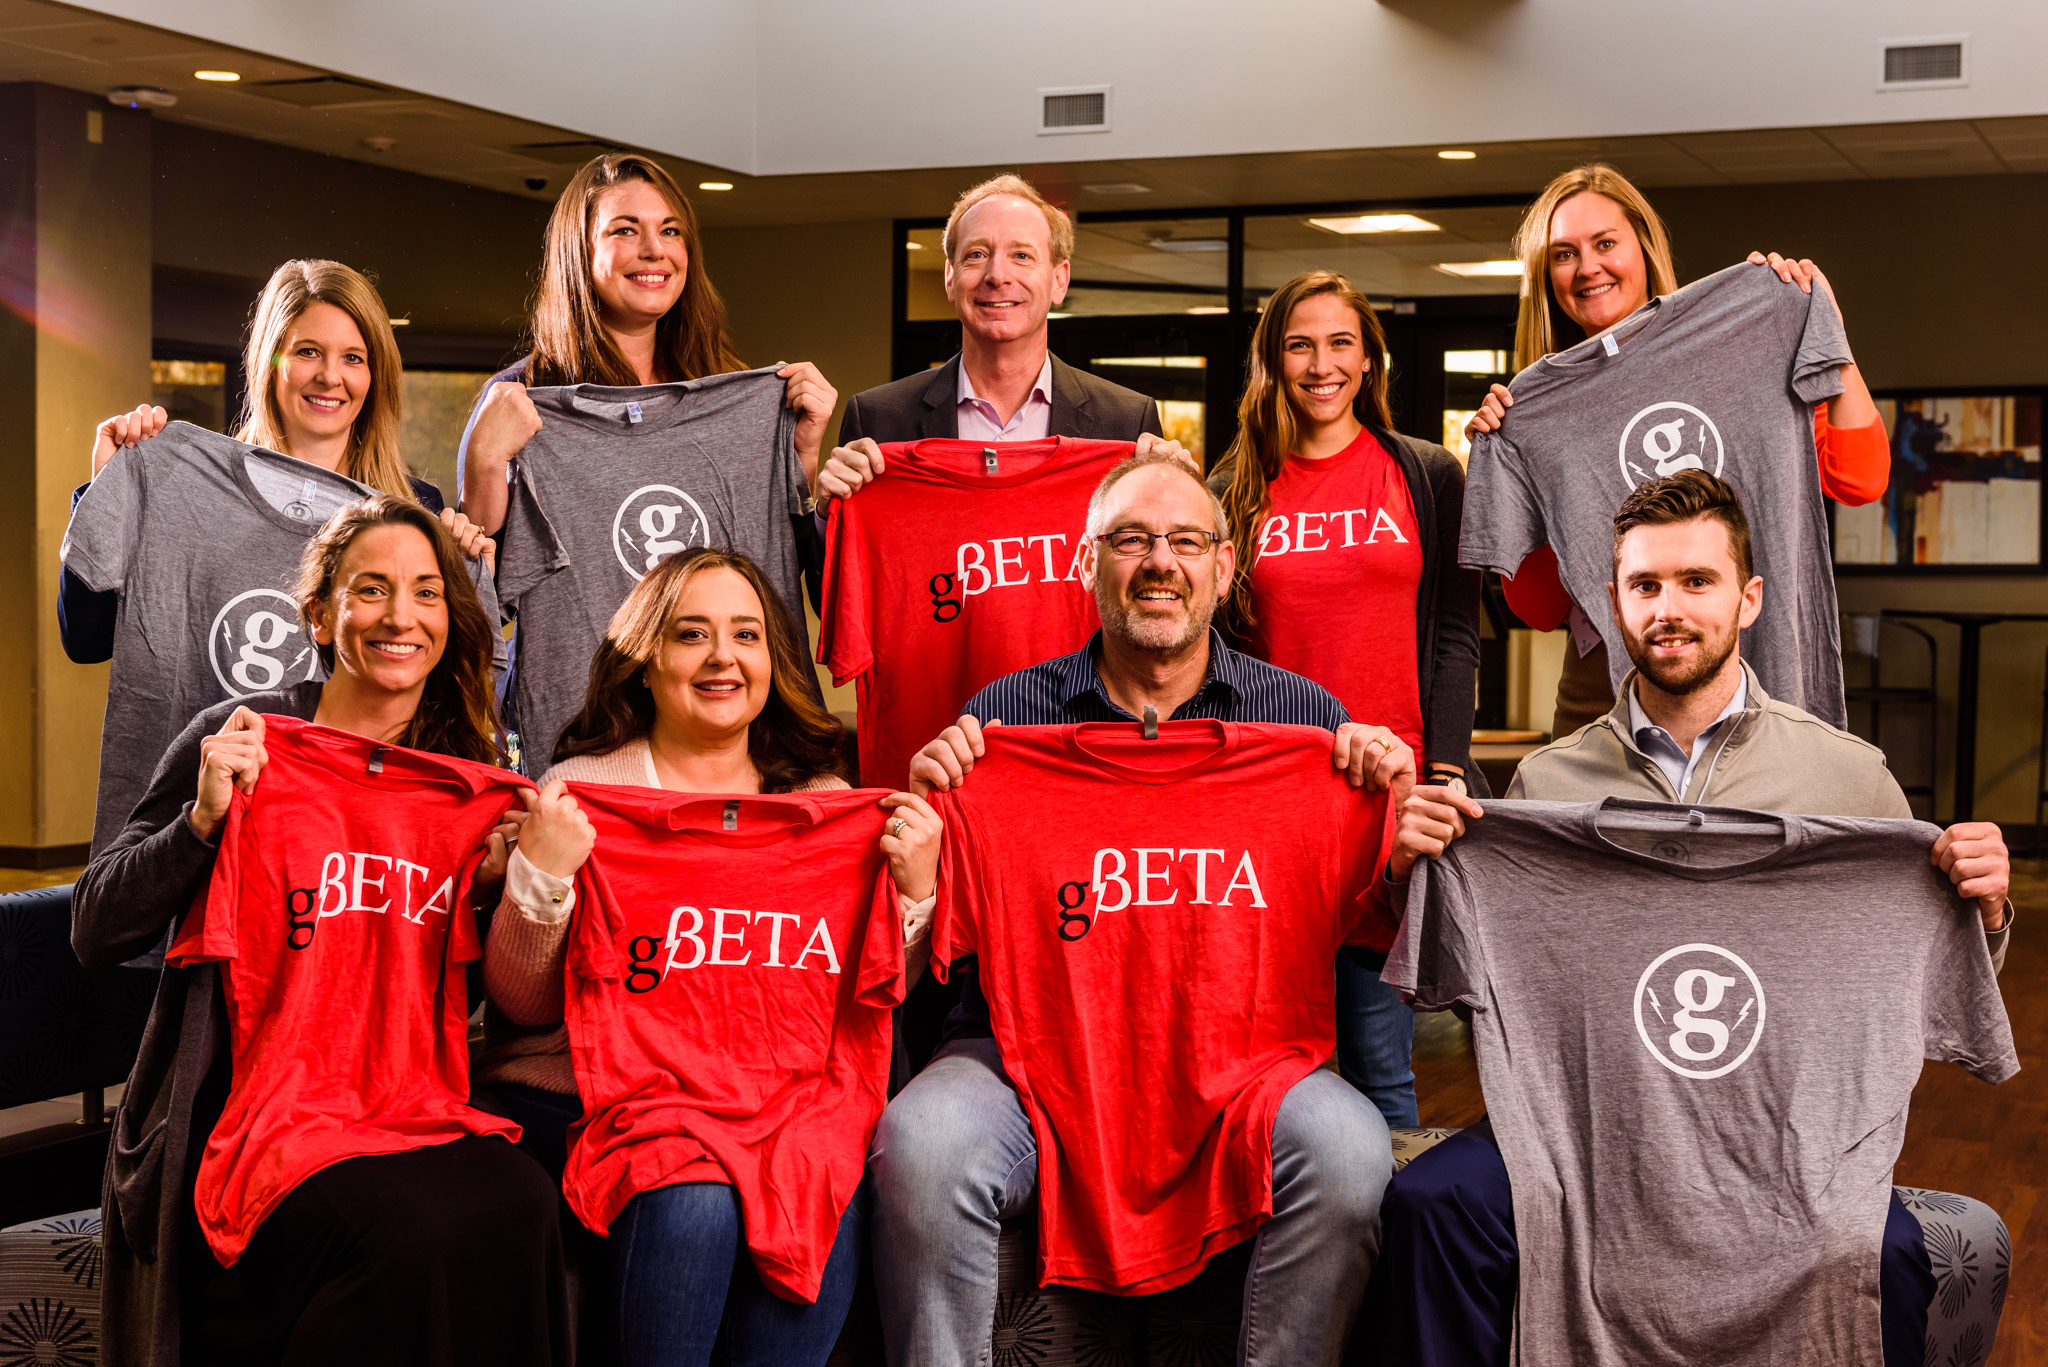 gBETA group tshirts.jpg